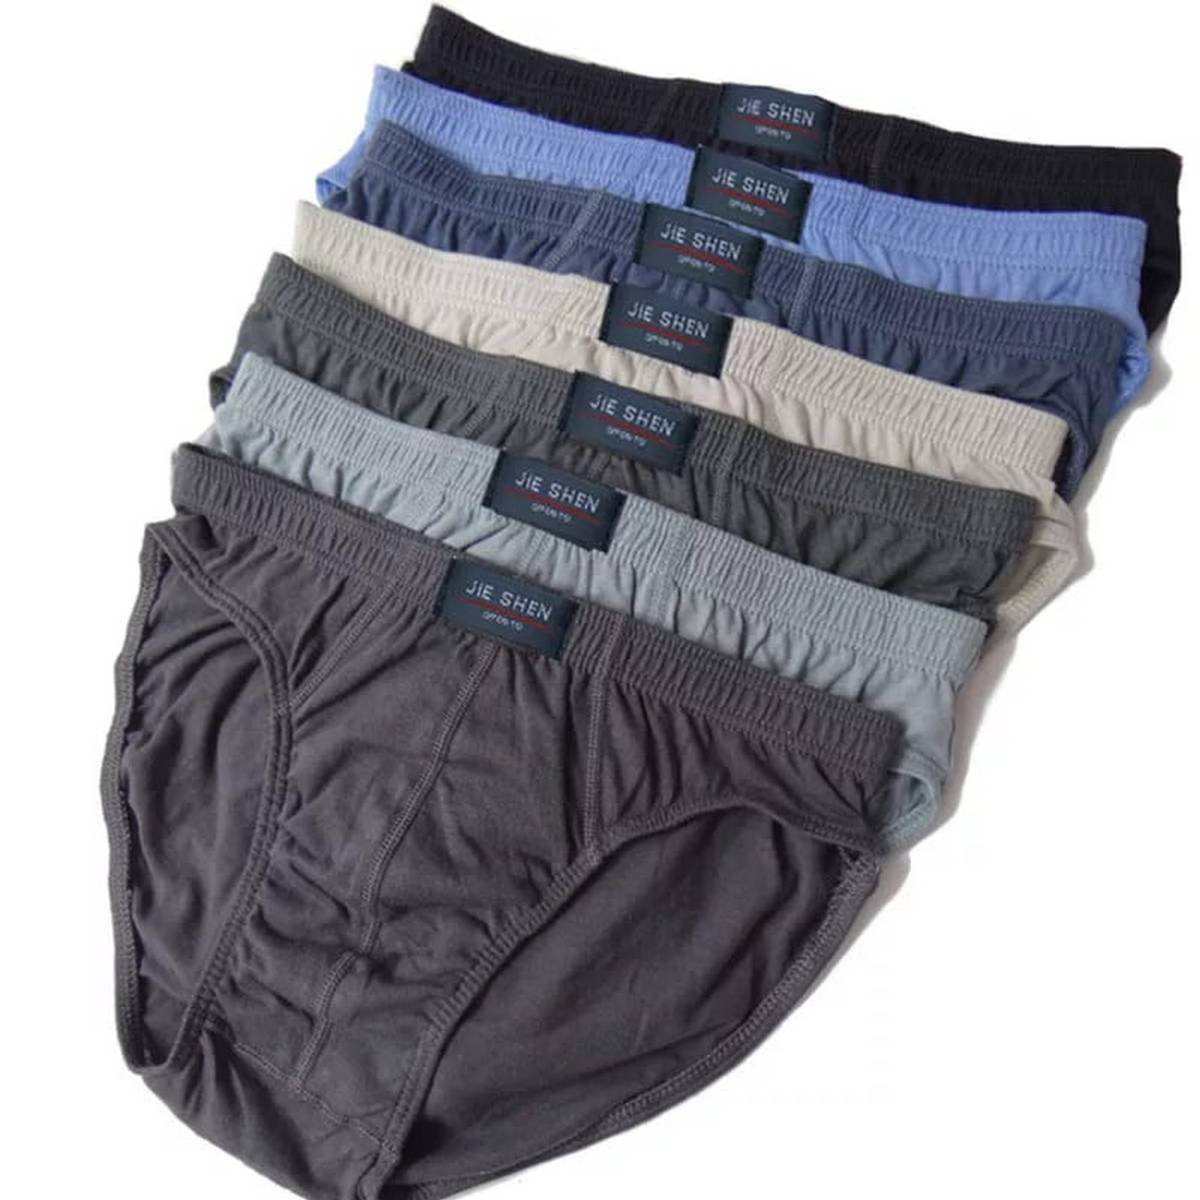 High Quality 100% Cotton Men's Double Layer Classic Brief/ Underwear For Men